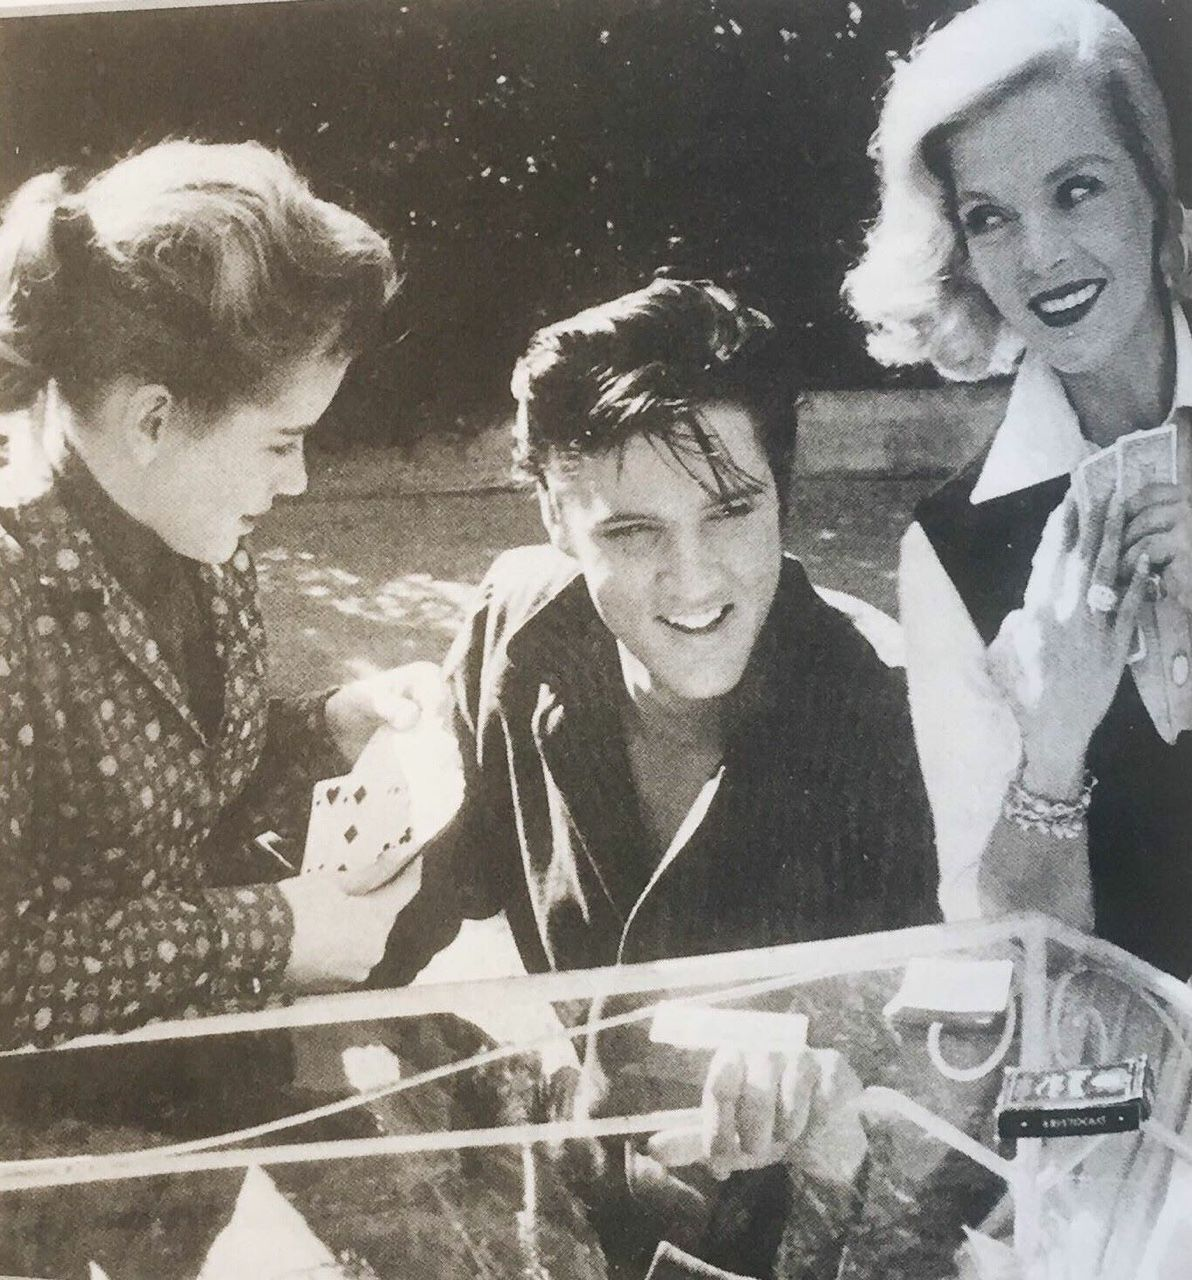 Baby let s play house elvis presley and the women who loved him by